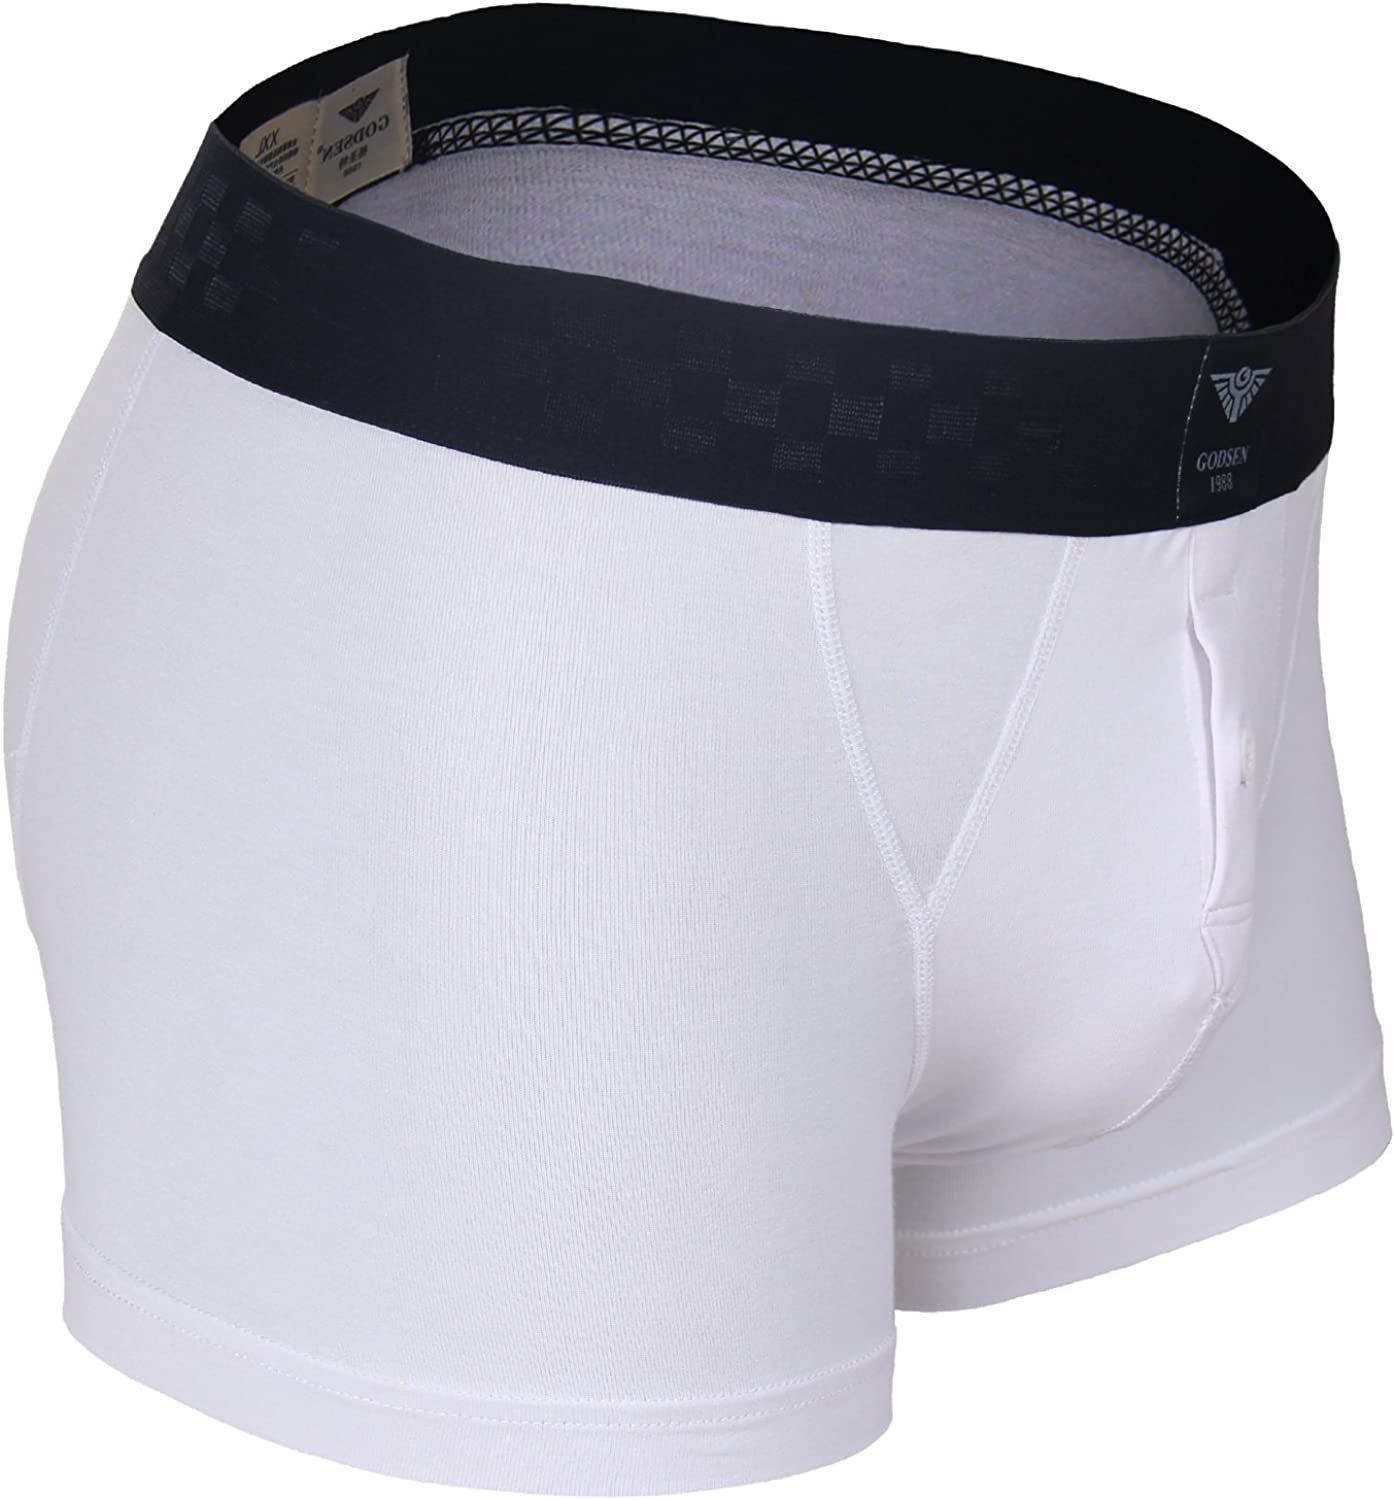 Godsen Mens 2 Pack Cotton Boxer Brief with Elastic Waistband